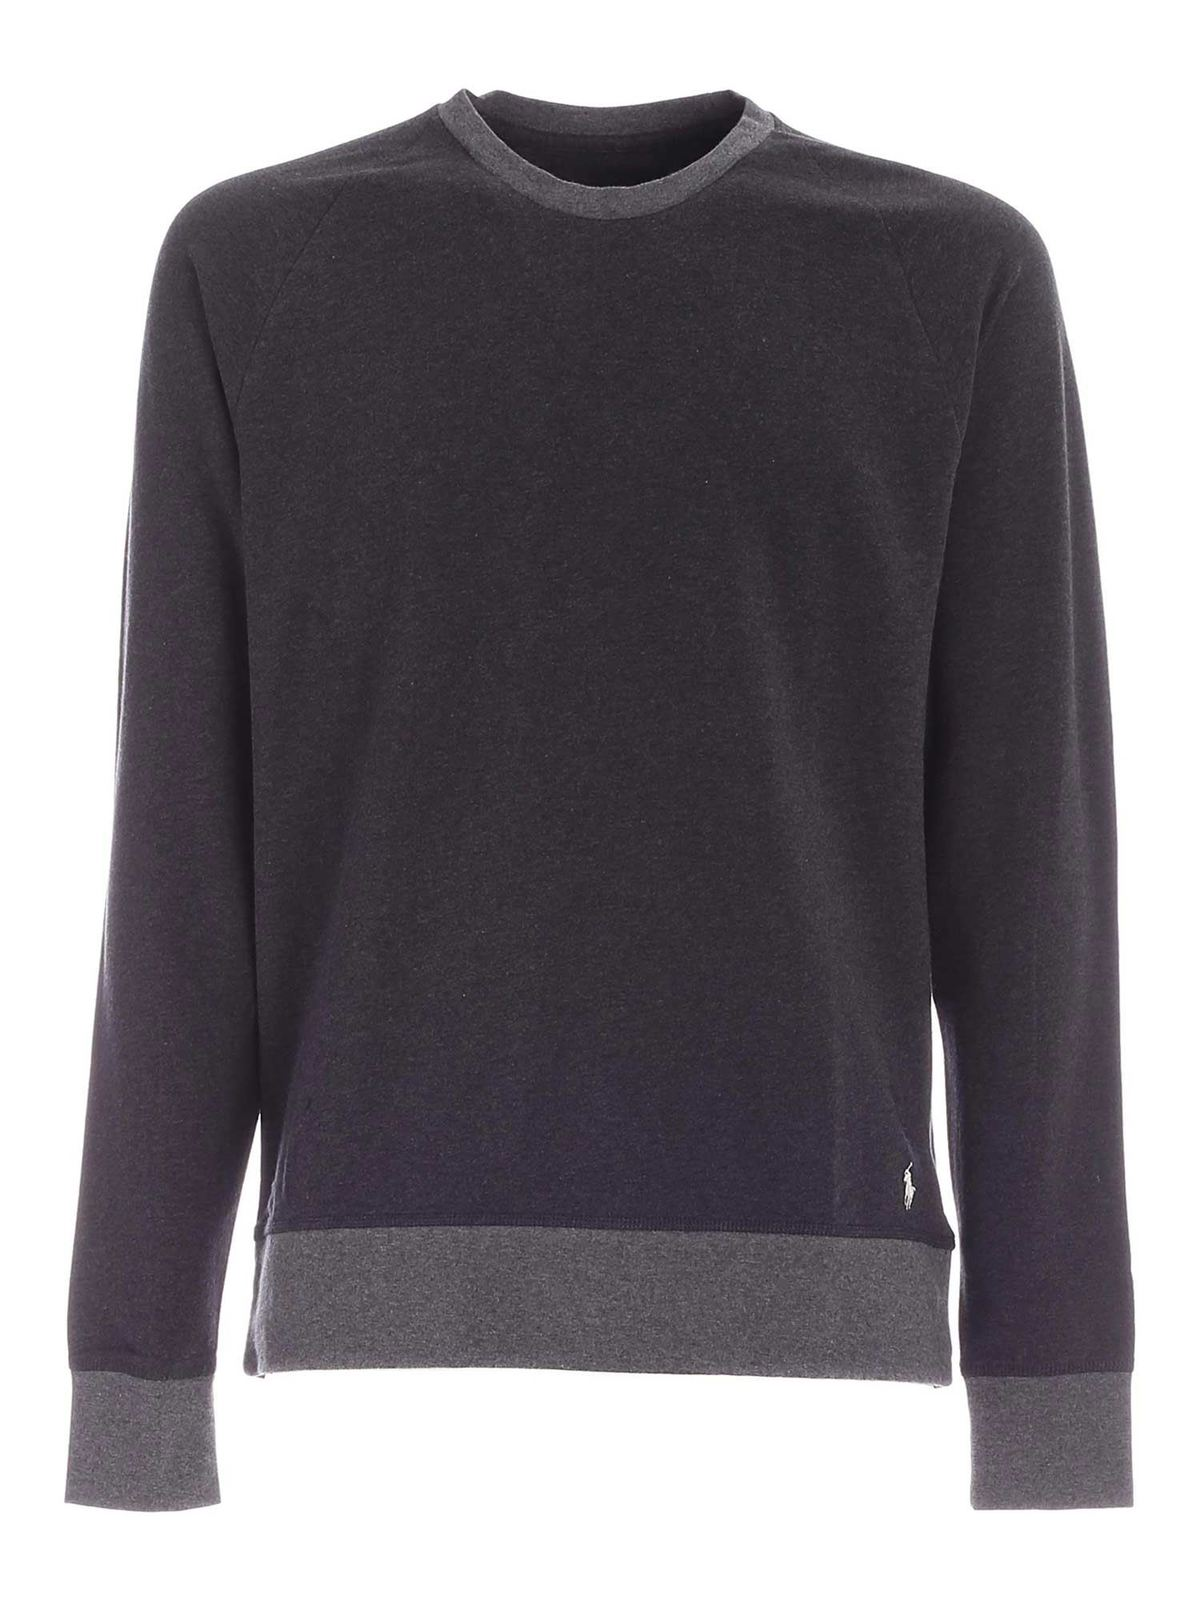 POLO RALPH LAUREN CREWNECK SWEATSHIRT IN GREY